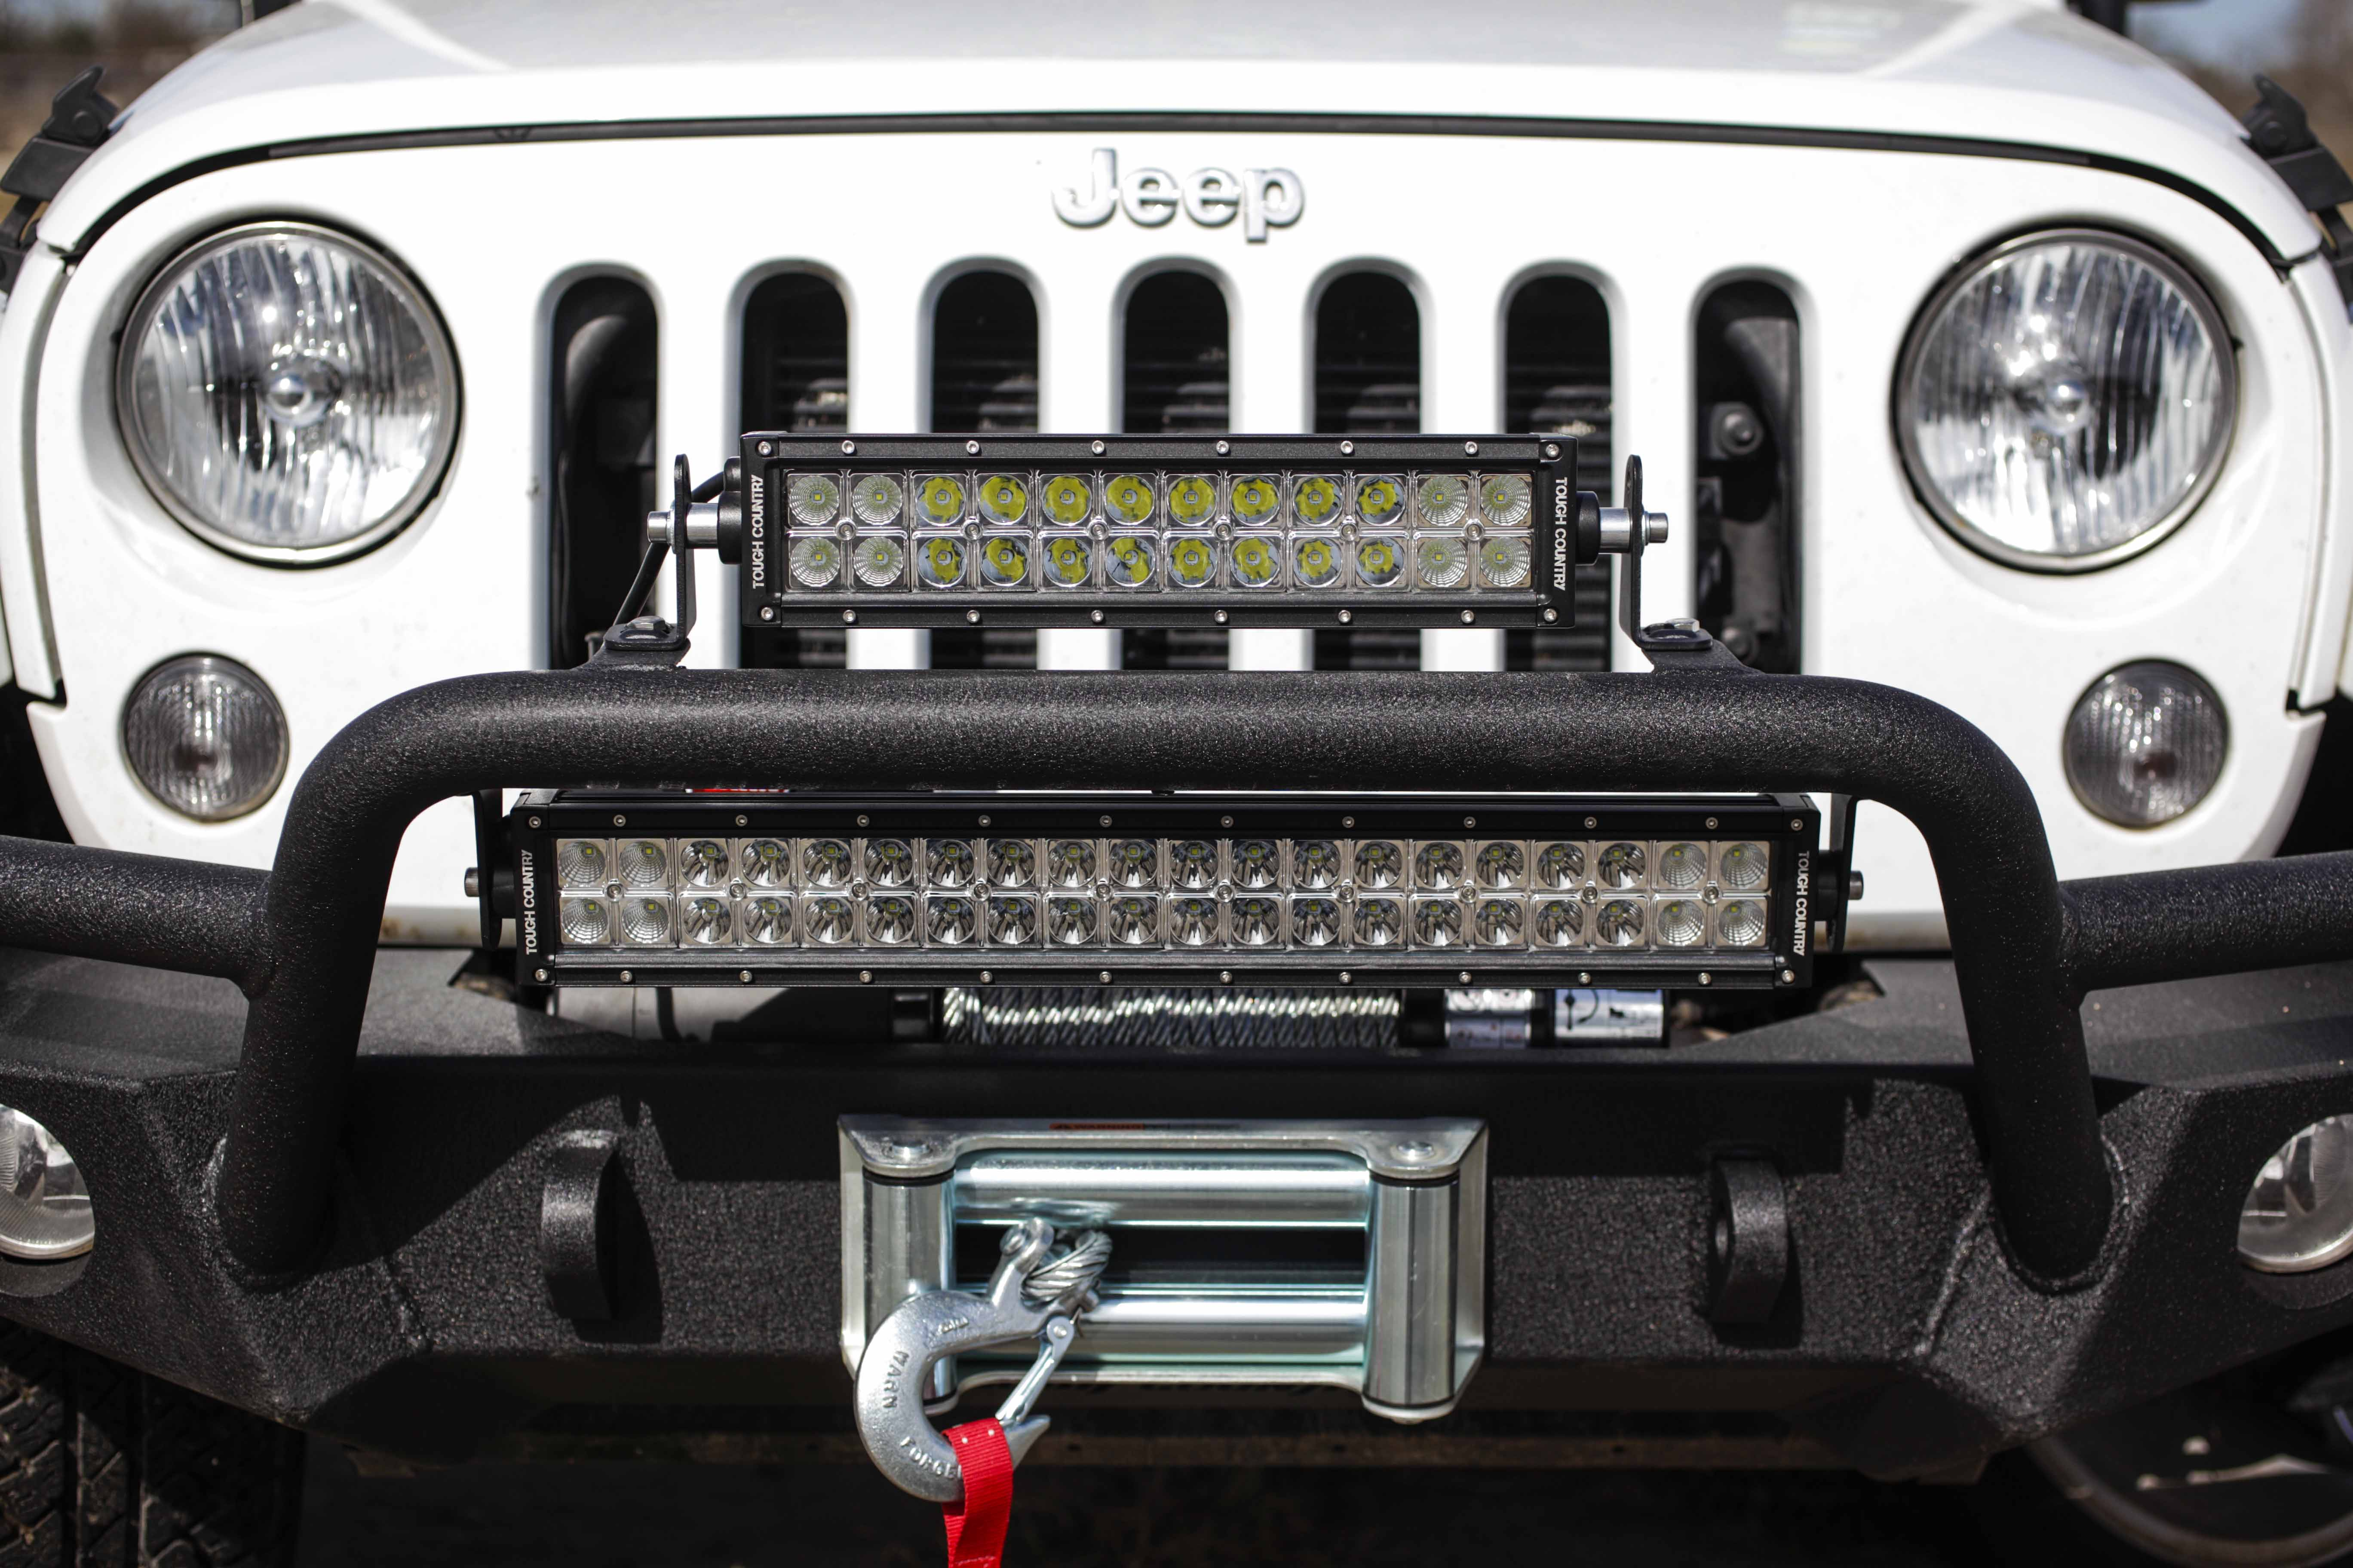 wrangler jeep suspension black stubby winch bumper rough jk series leds systems bumpers country led front w for